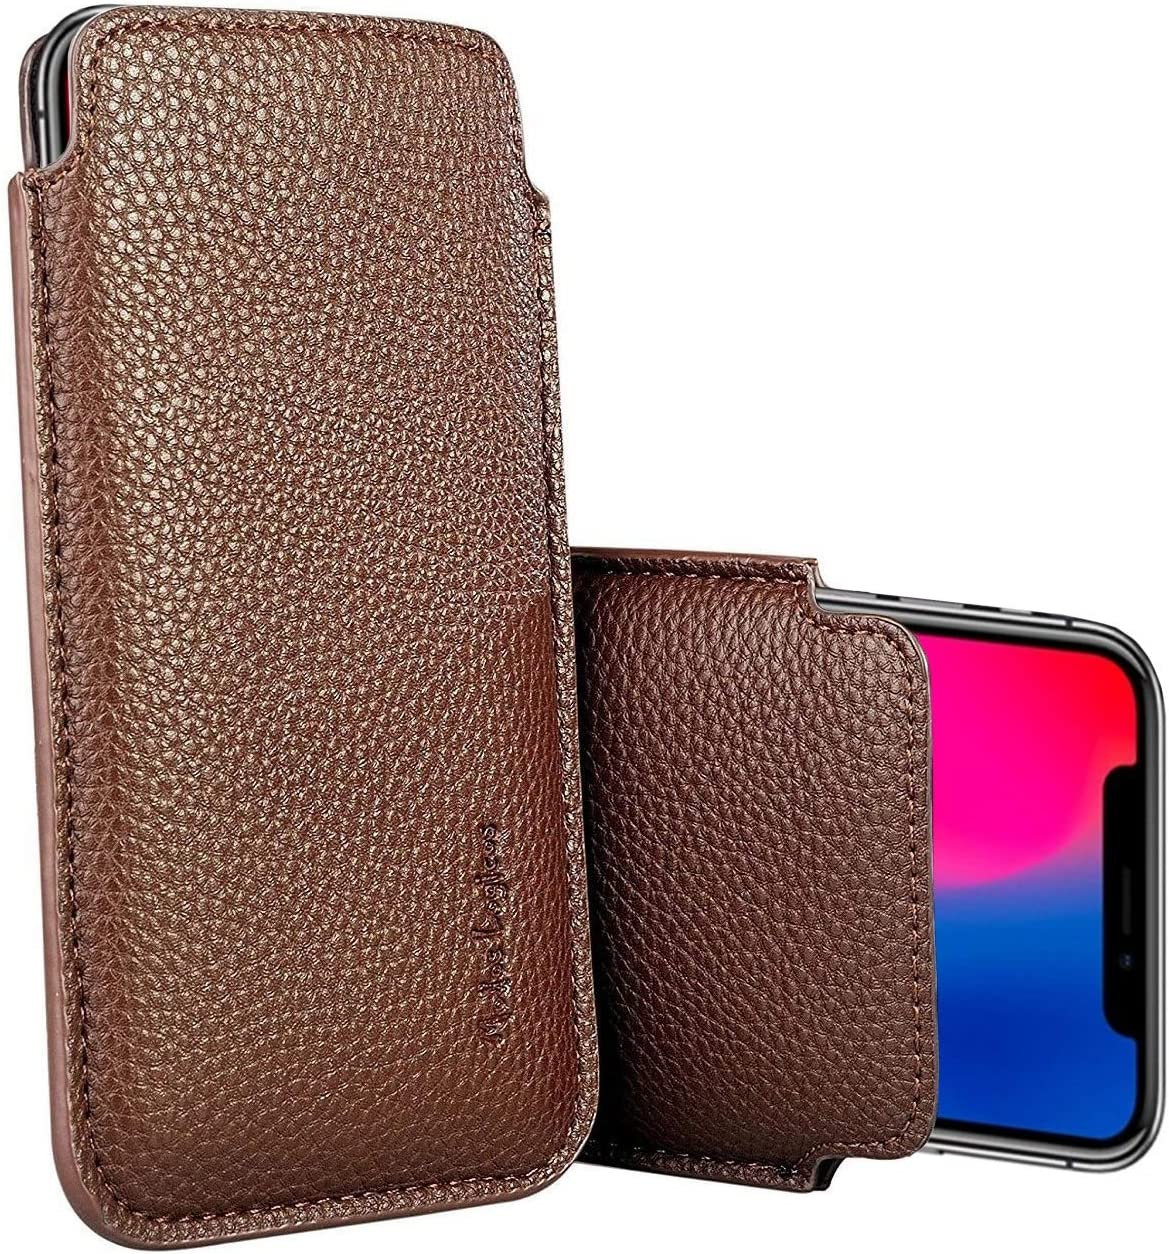 """Apple iPhone XR/iPhone 11 Sleeve, Modos Logicos Synthetic Leather Protective Sleeve Pouch Case for iPhone XR/iPhone 11 6.1"""", Professional Executive Case Design with Elastic Pull Strap - Brown"""